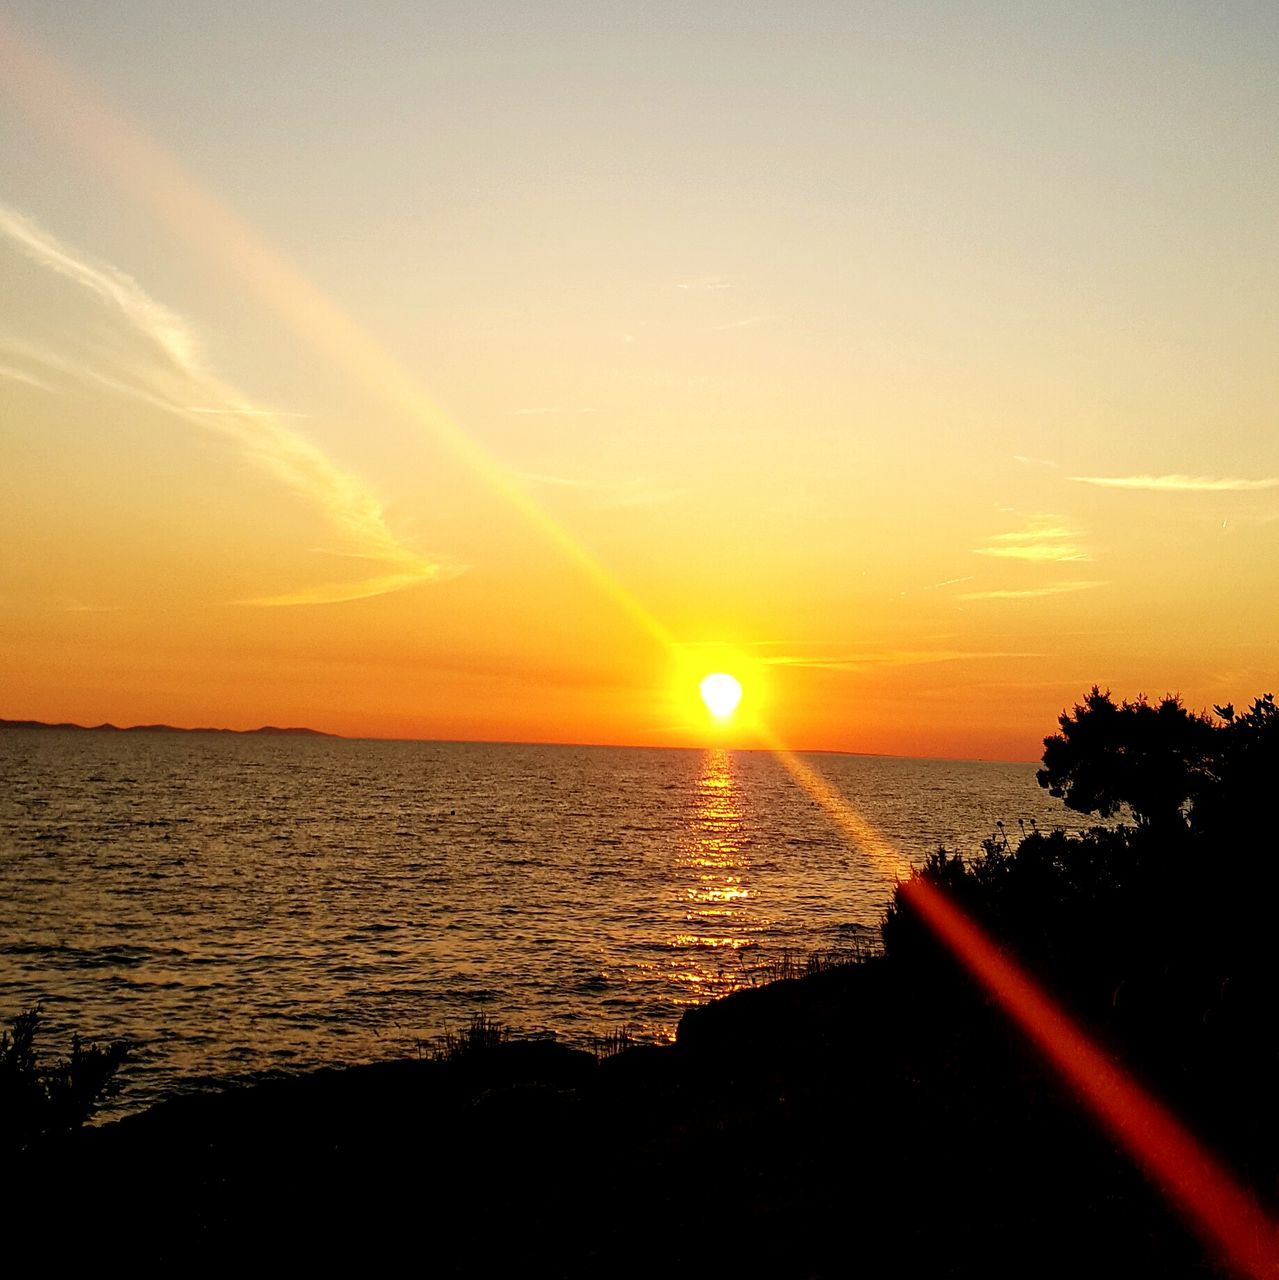 sunset, sun, orange color, beauty in nature, scenics, silhouette, sunbeam, sunlight, nature, lens flare, sea, tranquil scene, idyllic, tranquility, no people, sky, water, outdoors, horizon over water